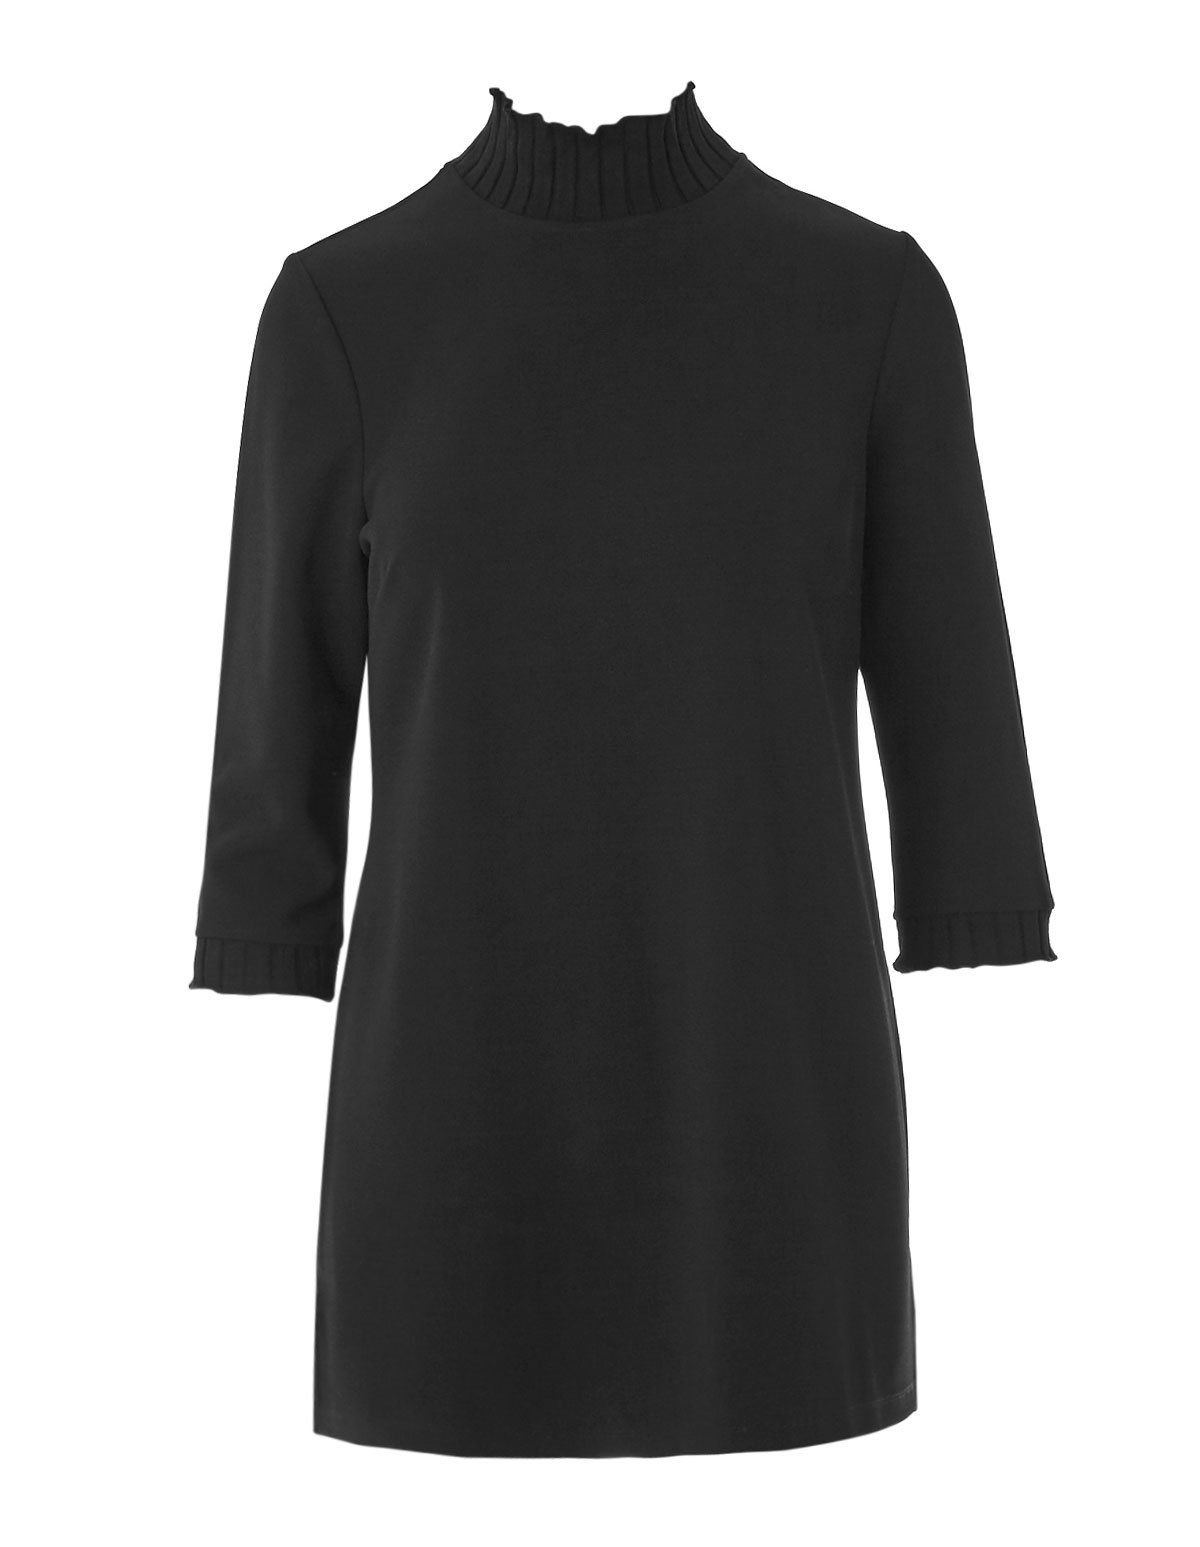 Black Crepe Knit Tunic Top, Black, hi-res